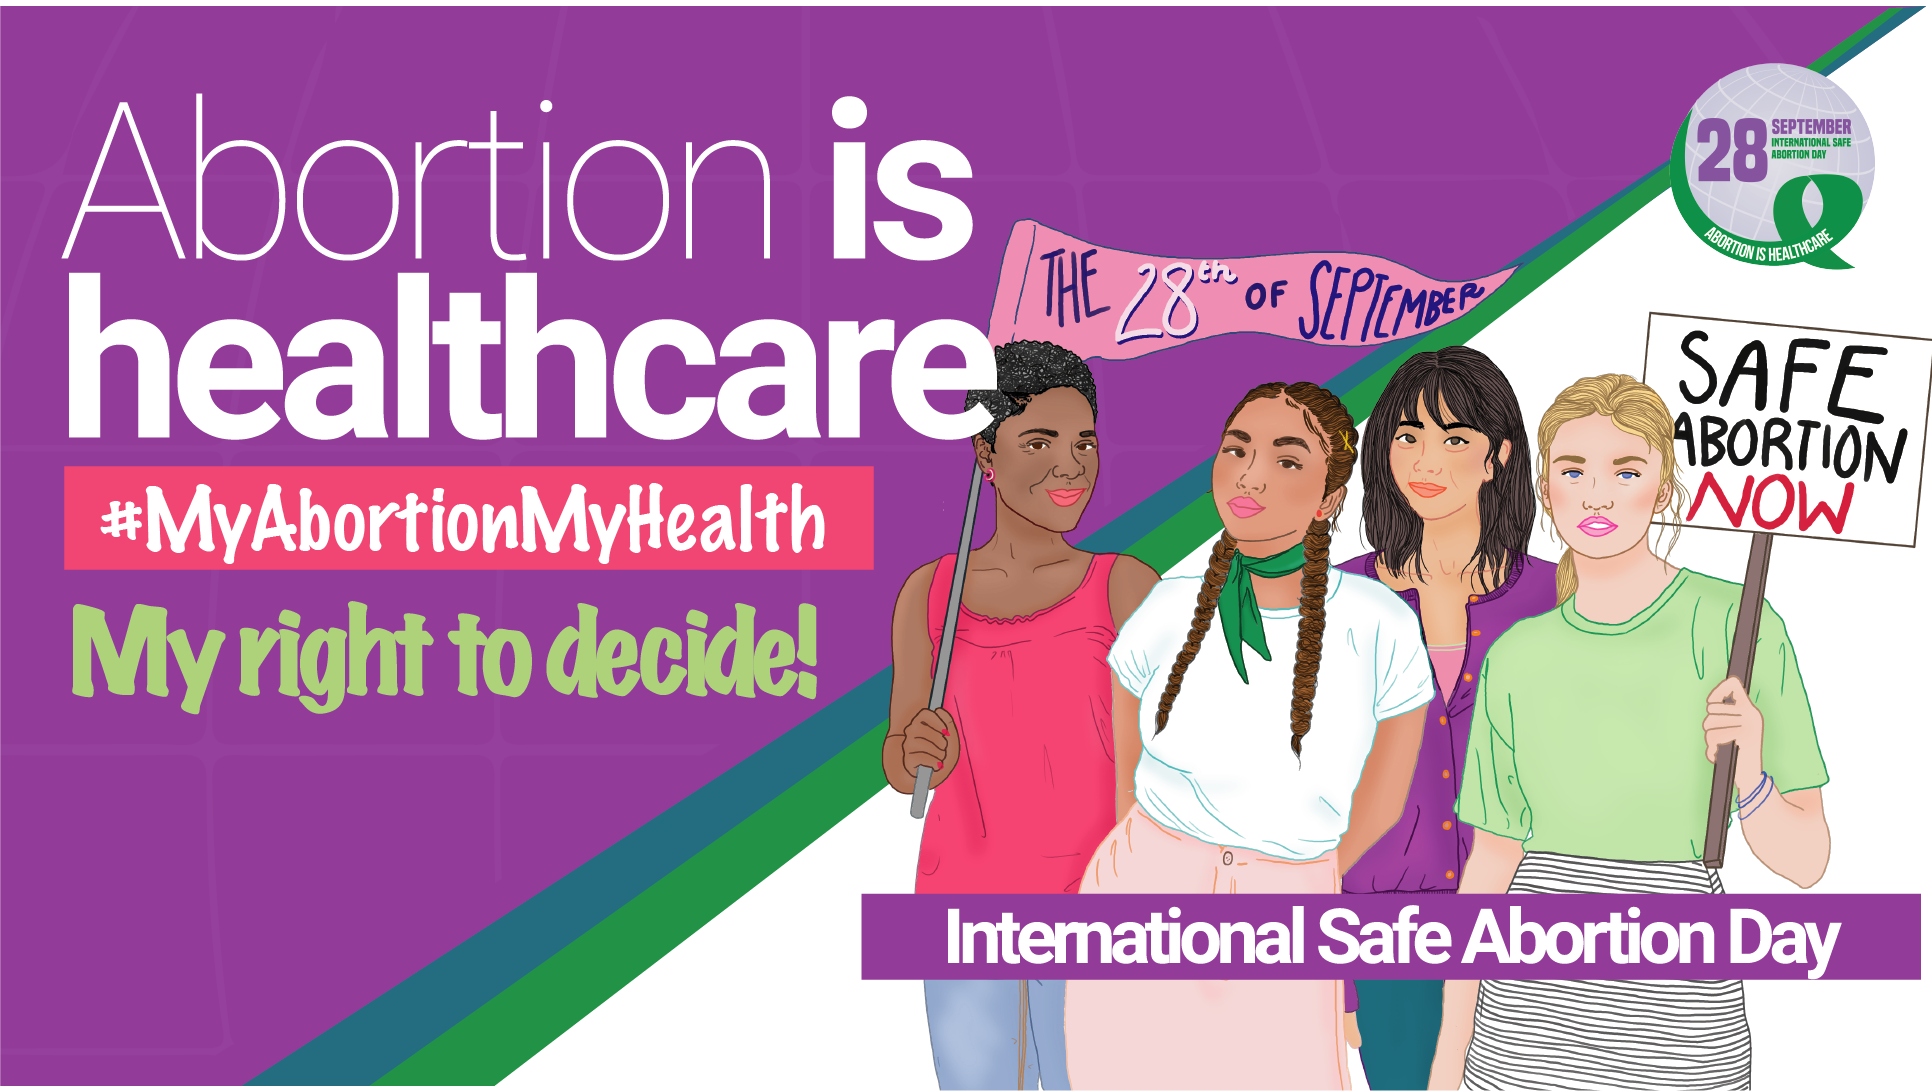 International Safe Abortion Day 2019: The Global Gag Rule as a barrier to access to safe abortion